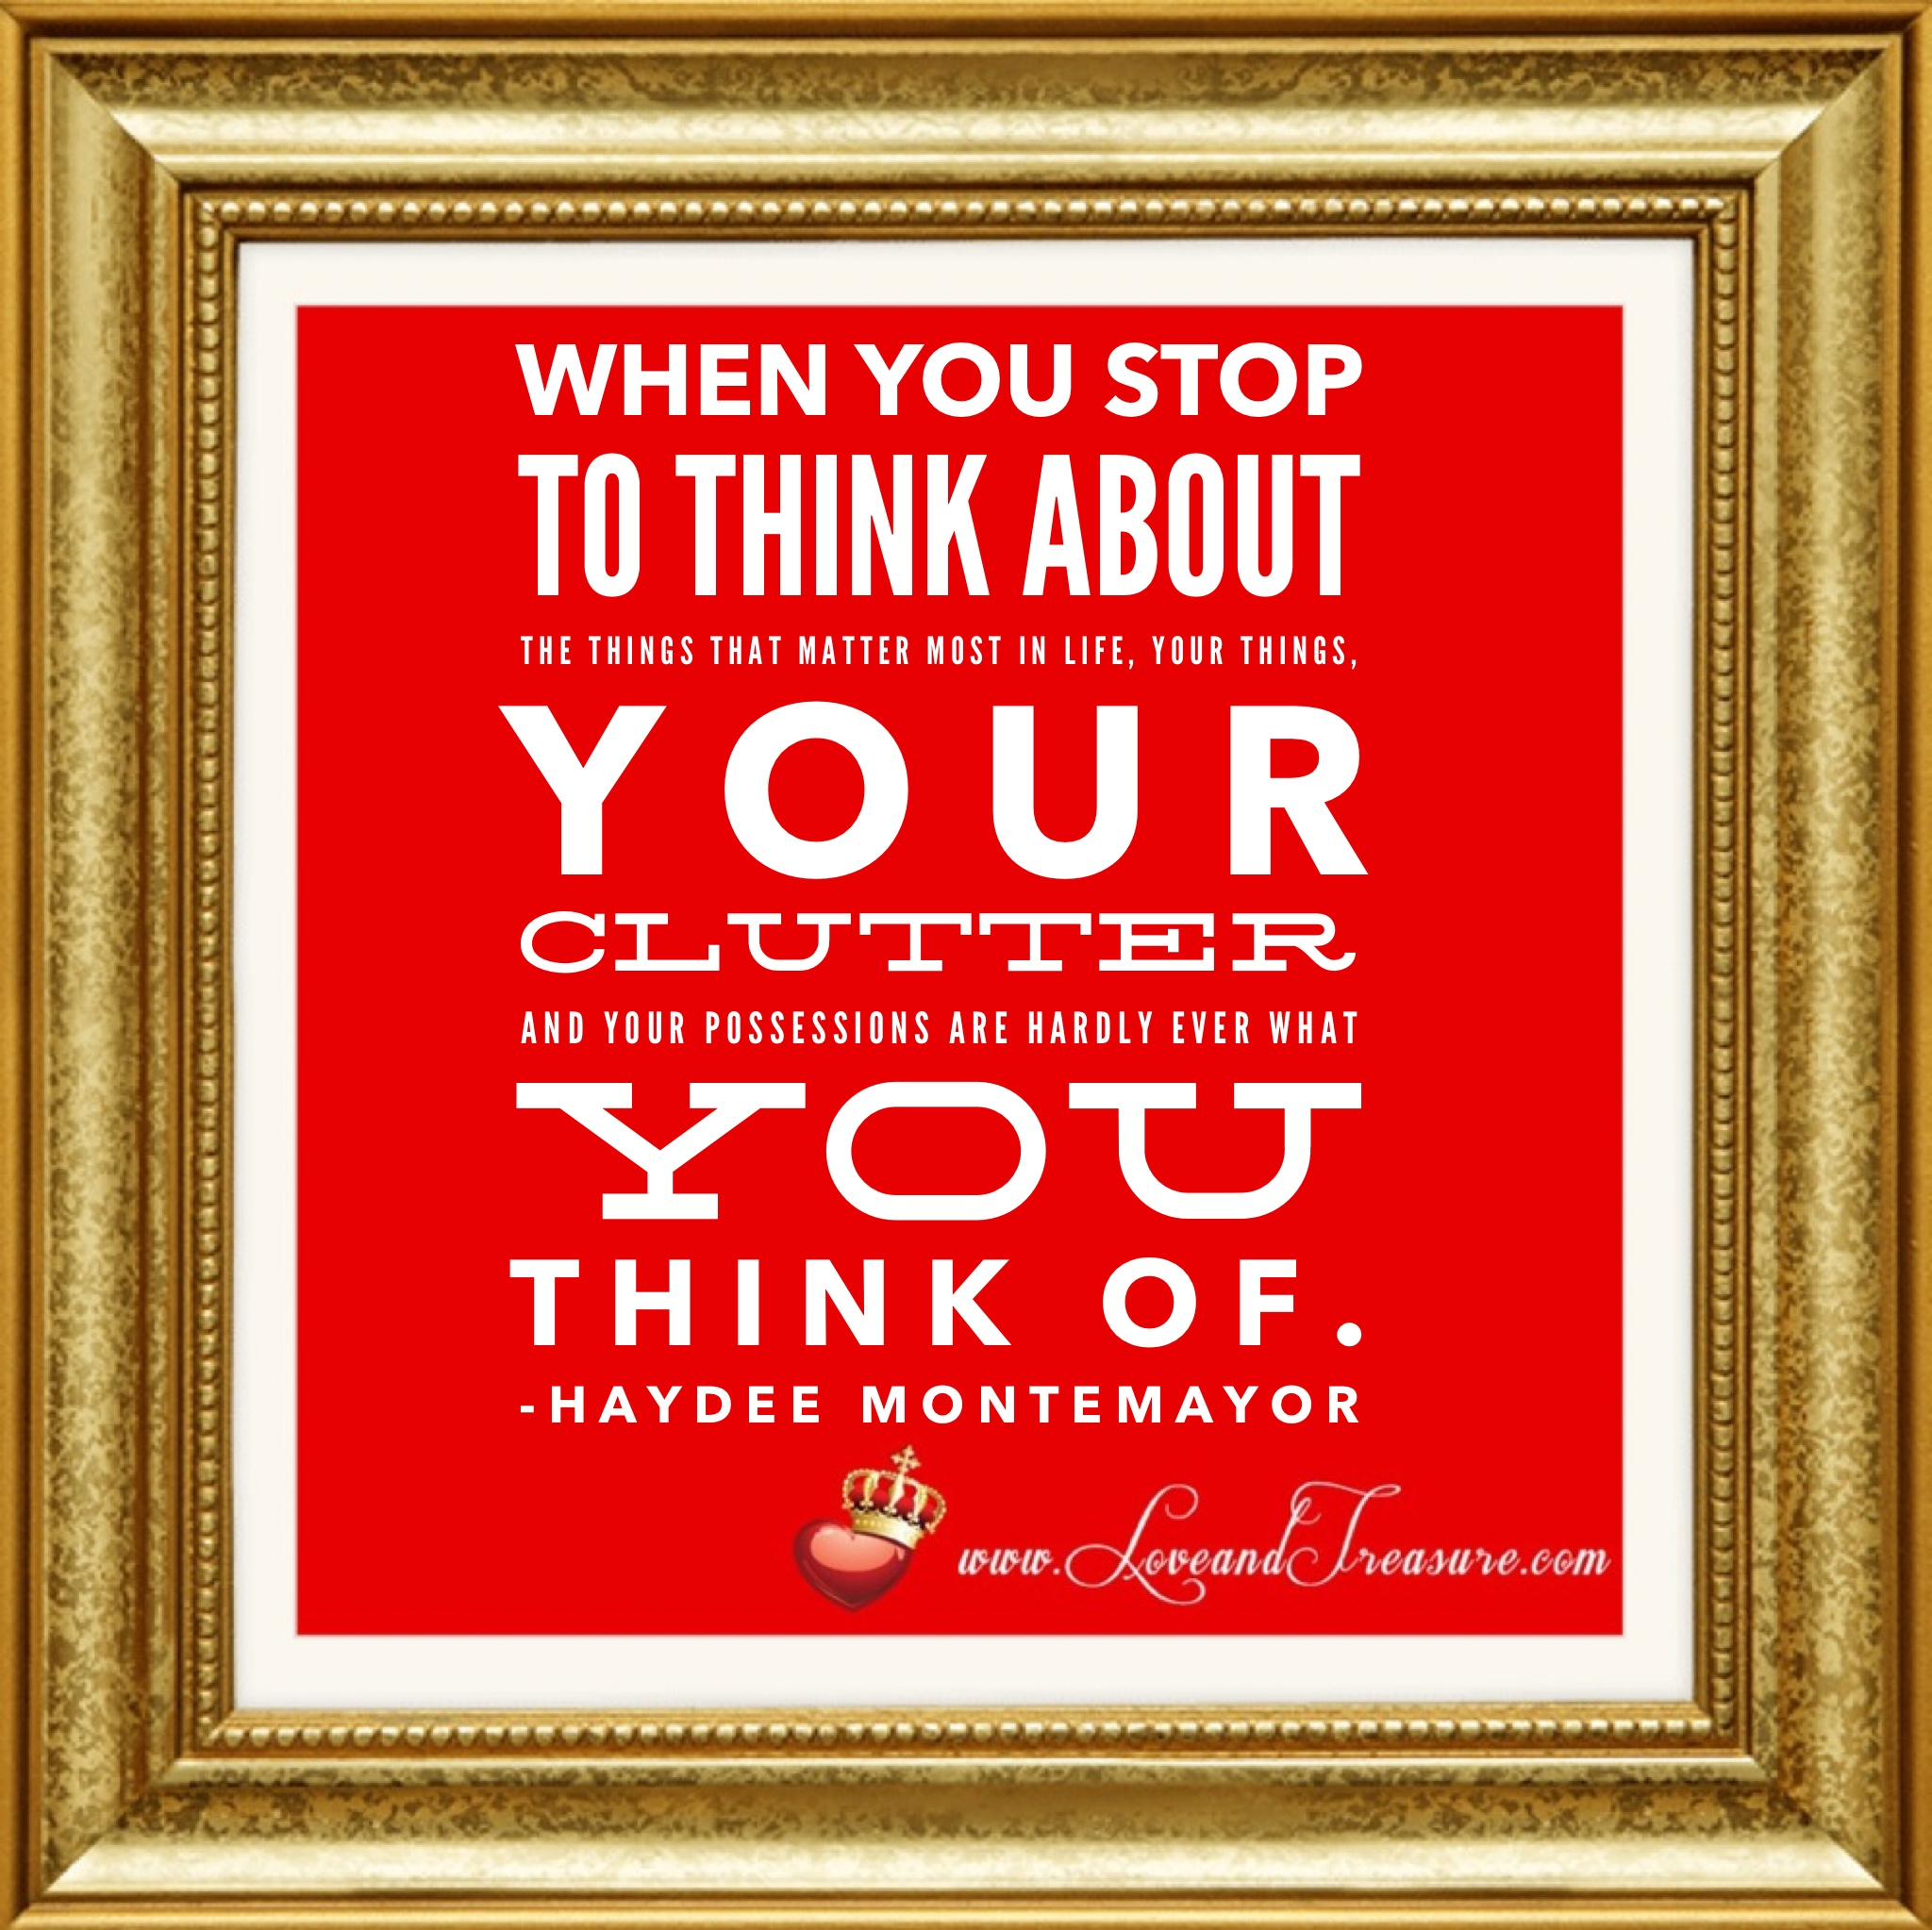 When you stop to think about the things that matter most in life, your things, your clutter and your possessions are hardly ever what you think of. treasurable by Haydee Montemayor from Love and Treasure